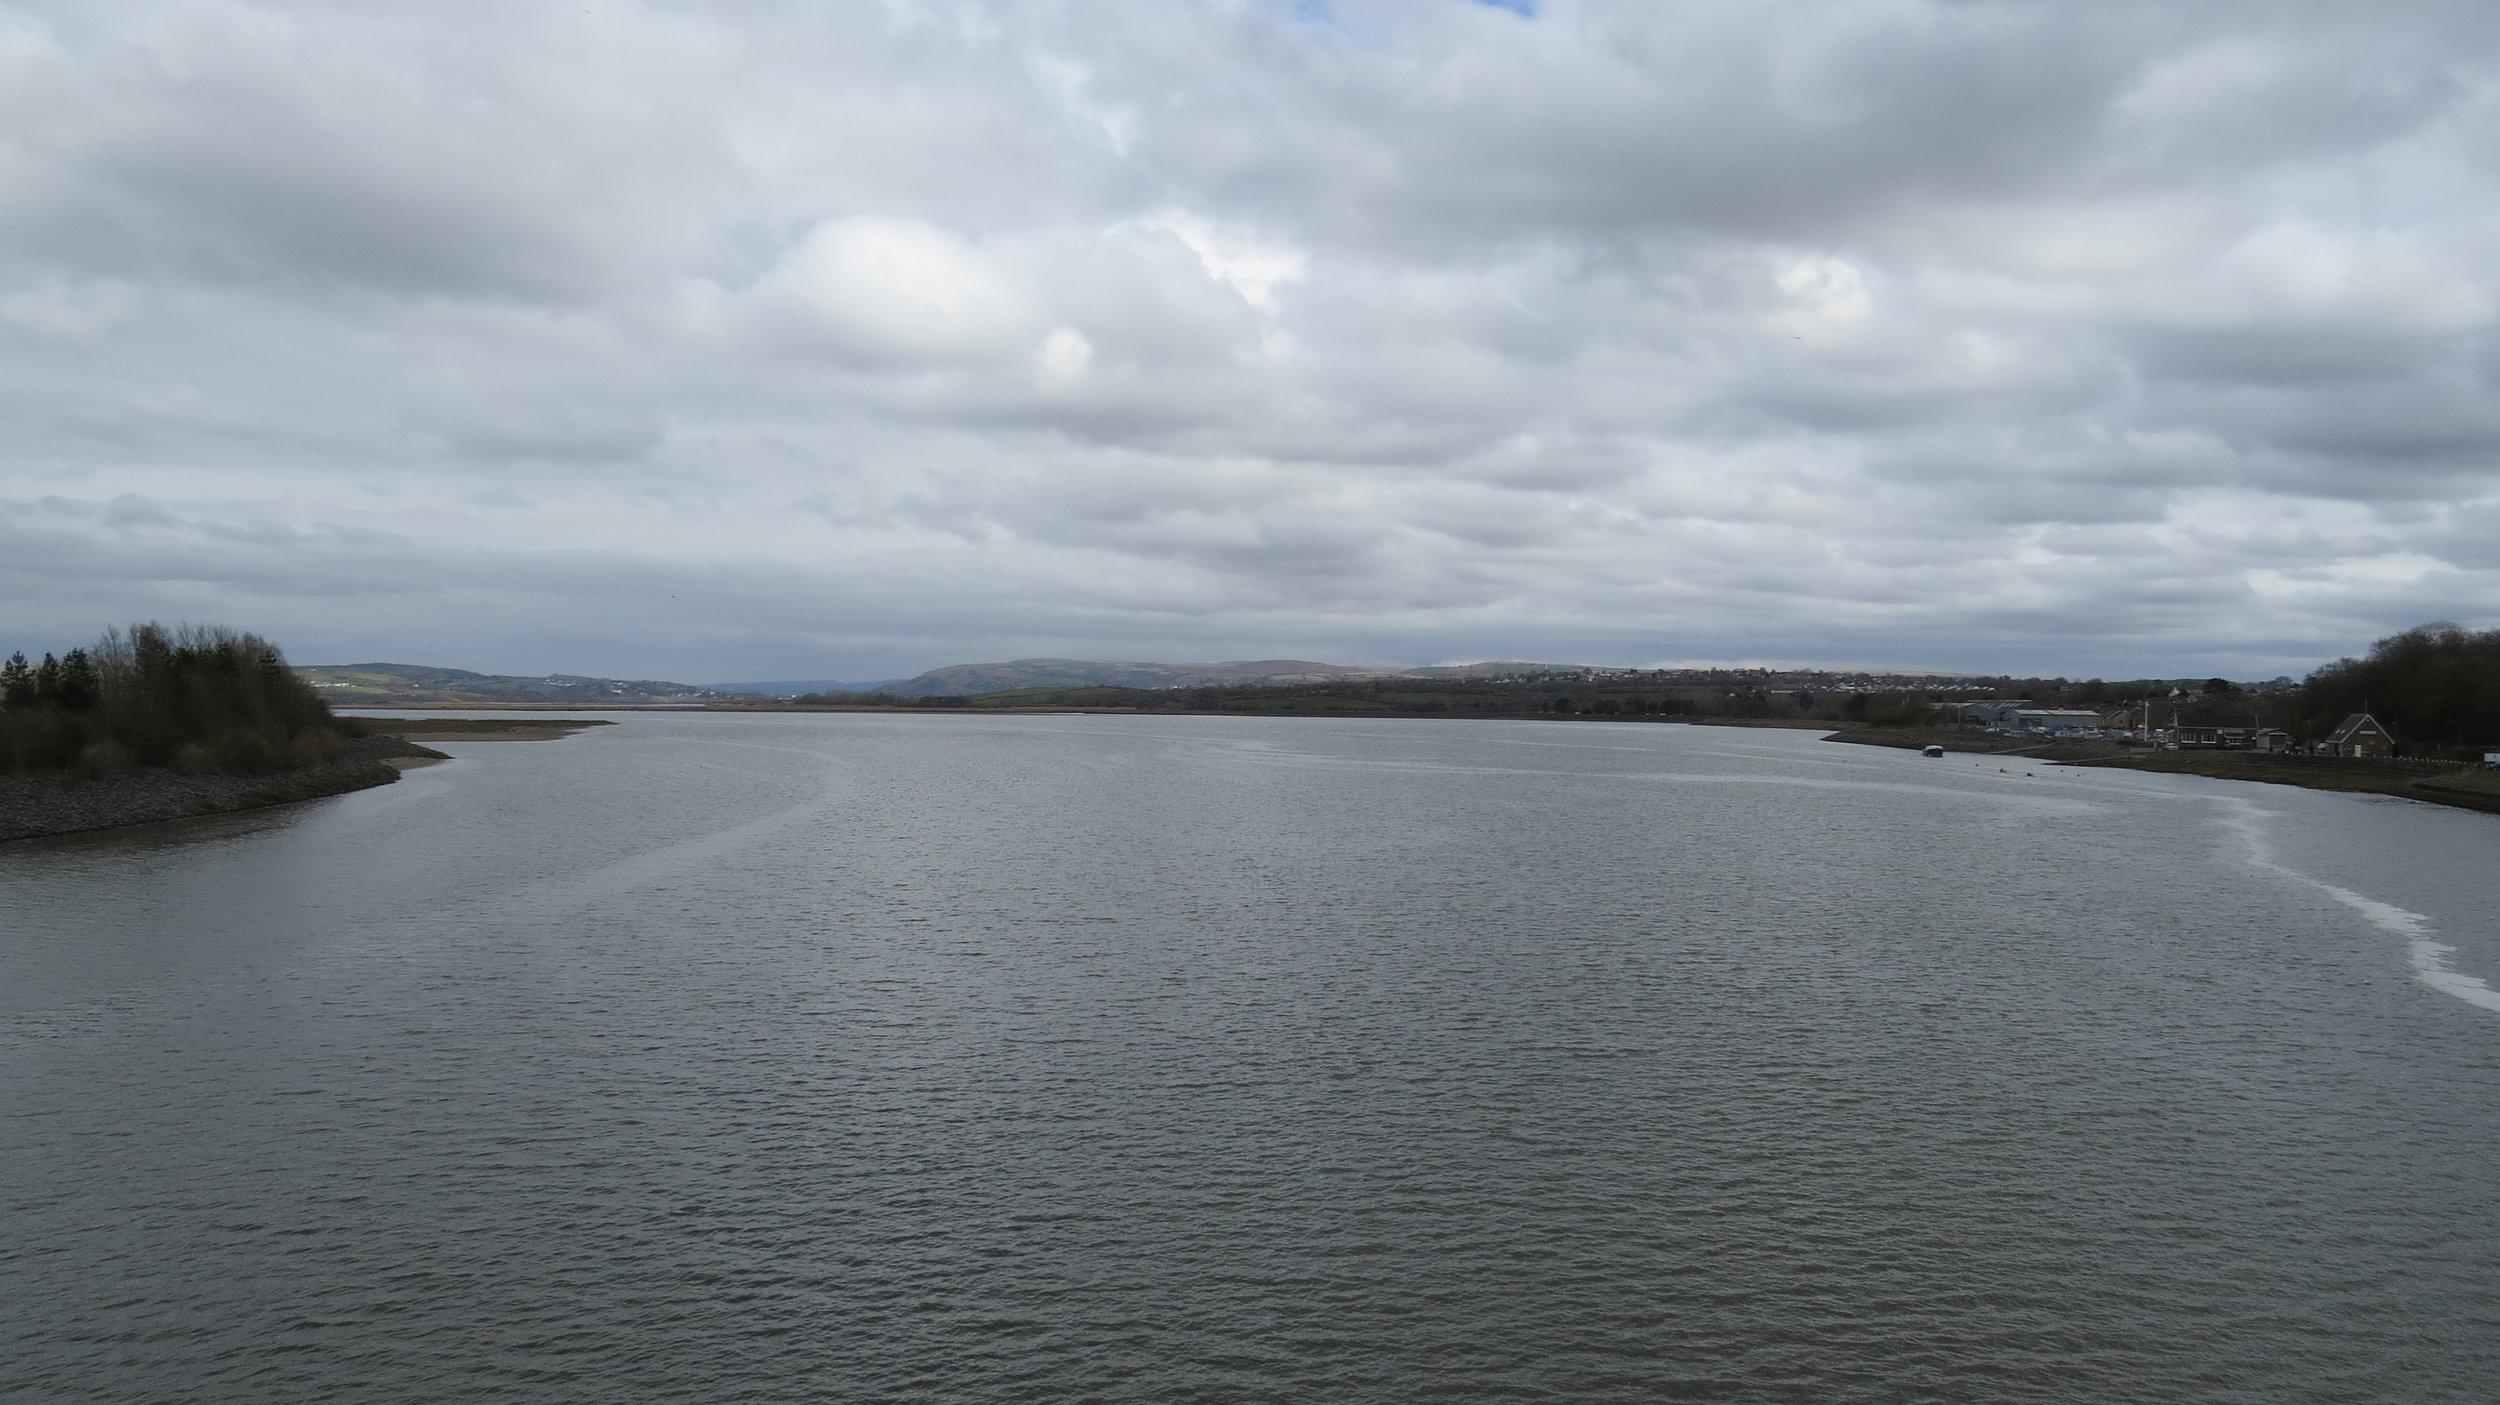 View from Loughor Bride